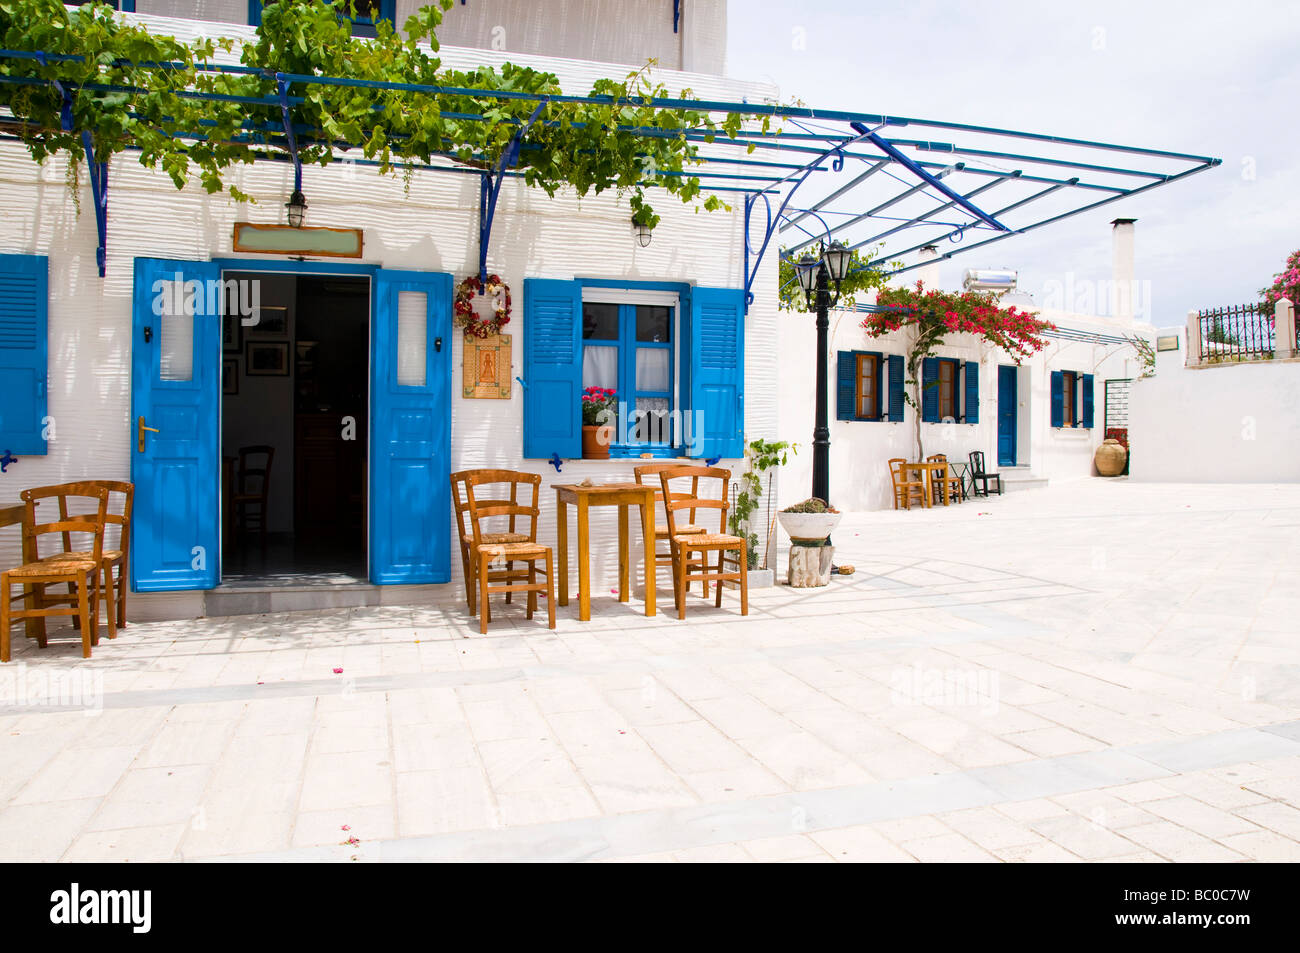 Cafe greece outdoor restaurant coffee shop greek islands paros cafe greece outdoor restaurant coffee shop greek islands paros lefkes travel furniture chairs table woven seat generic typical c geotapseo Gallery